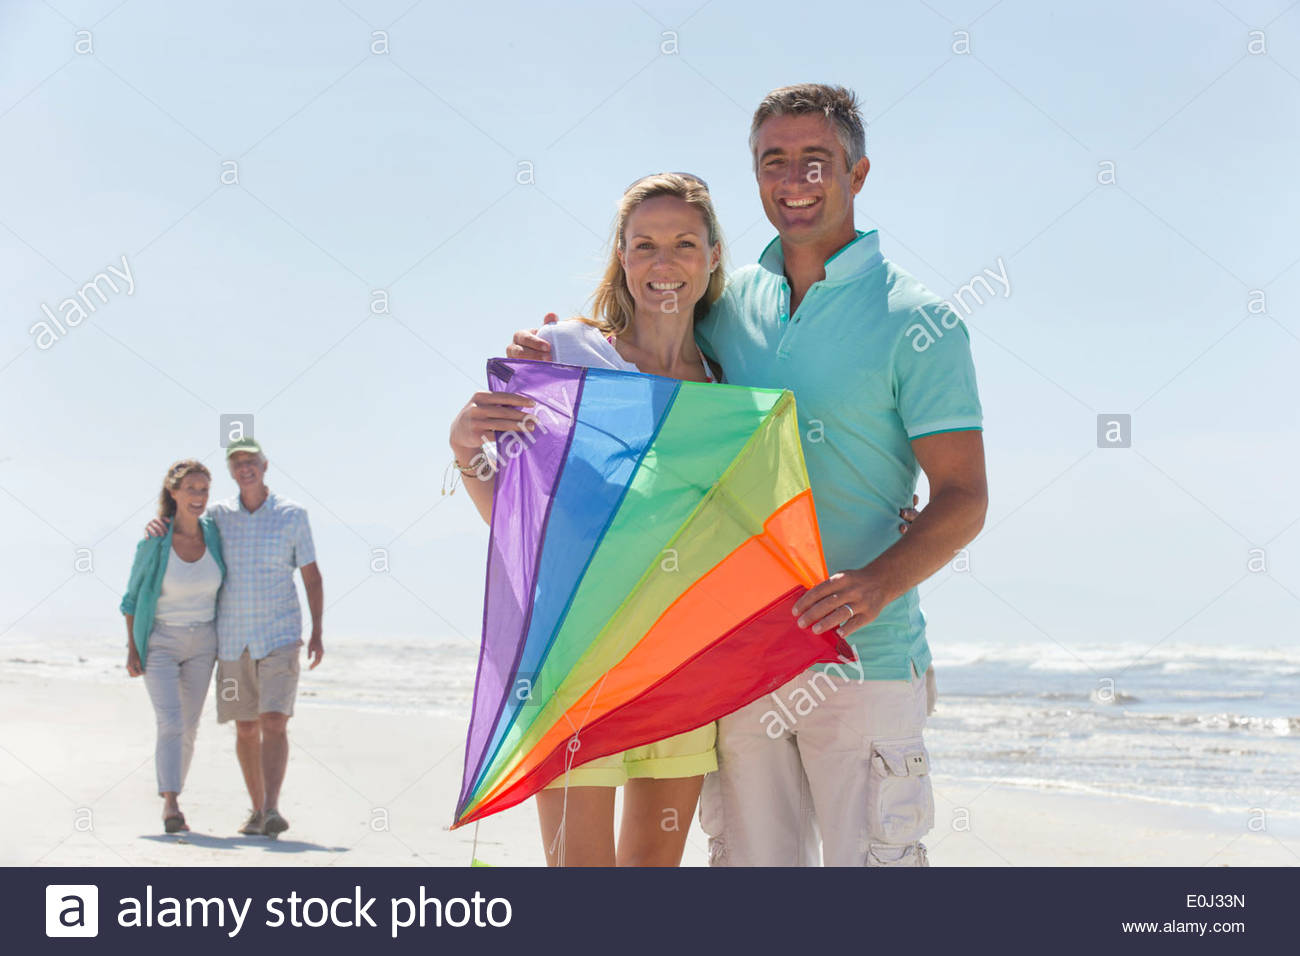 Portrait of smiling couple with kite on sunny beach - Stock Image